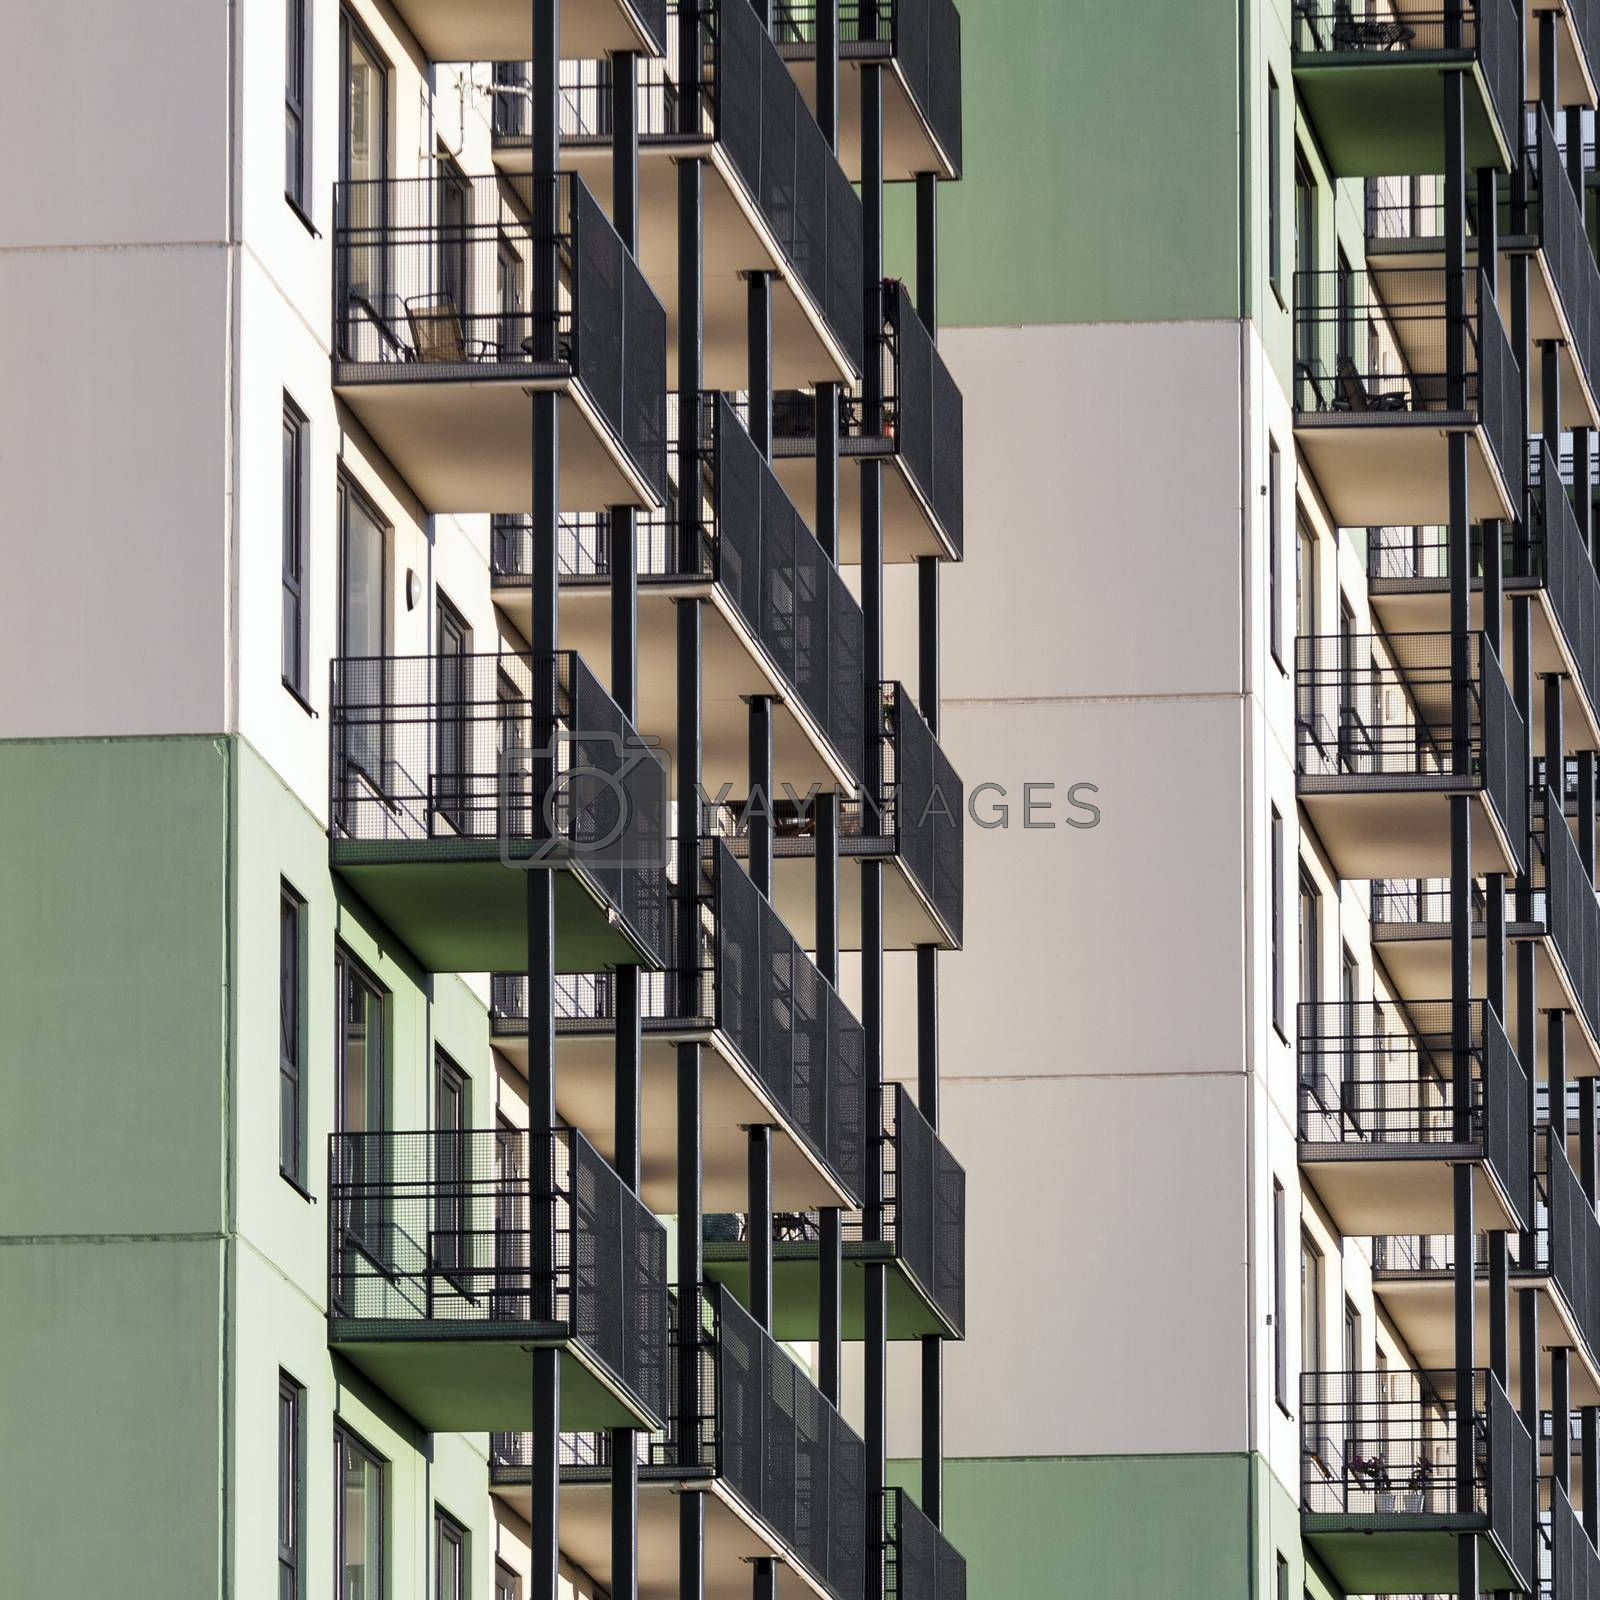 Modern residential building with balconies